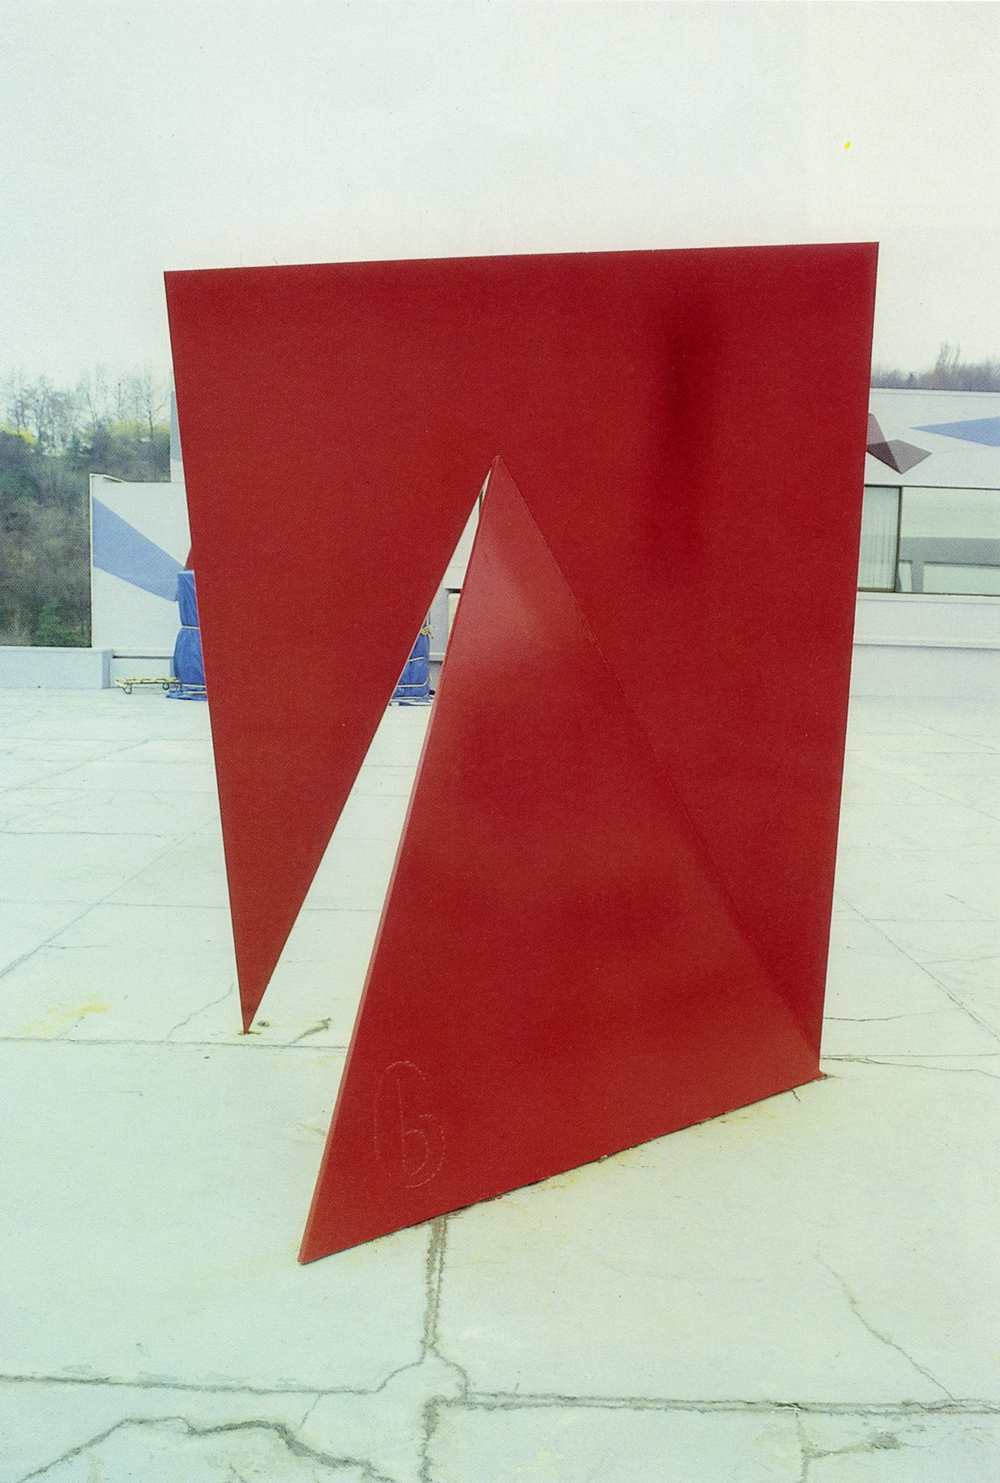 Walker Hill Art Center, Seoul, South Korea; 1985.  M.H. XXV.  9' x 7' x 5.5'.